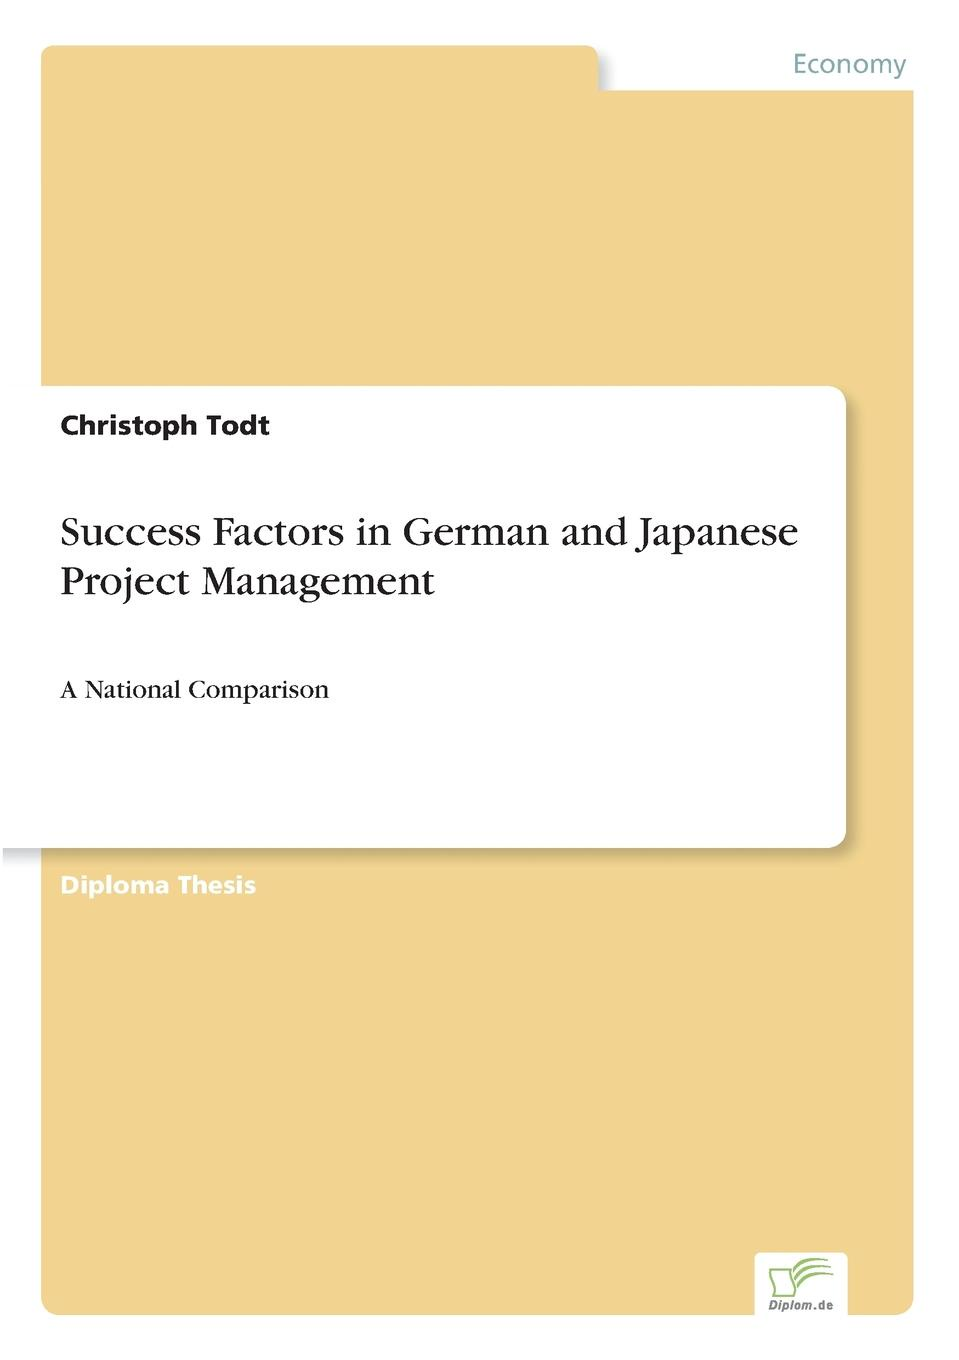 Christoph Todt Success Factors in German and Japanese Project Management kevin callahan r project management accounting budgeting tracking and reporting costs and profitability